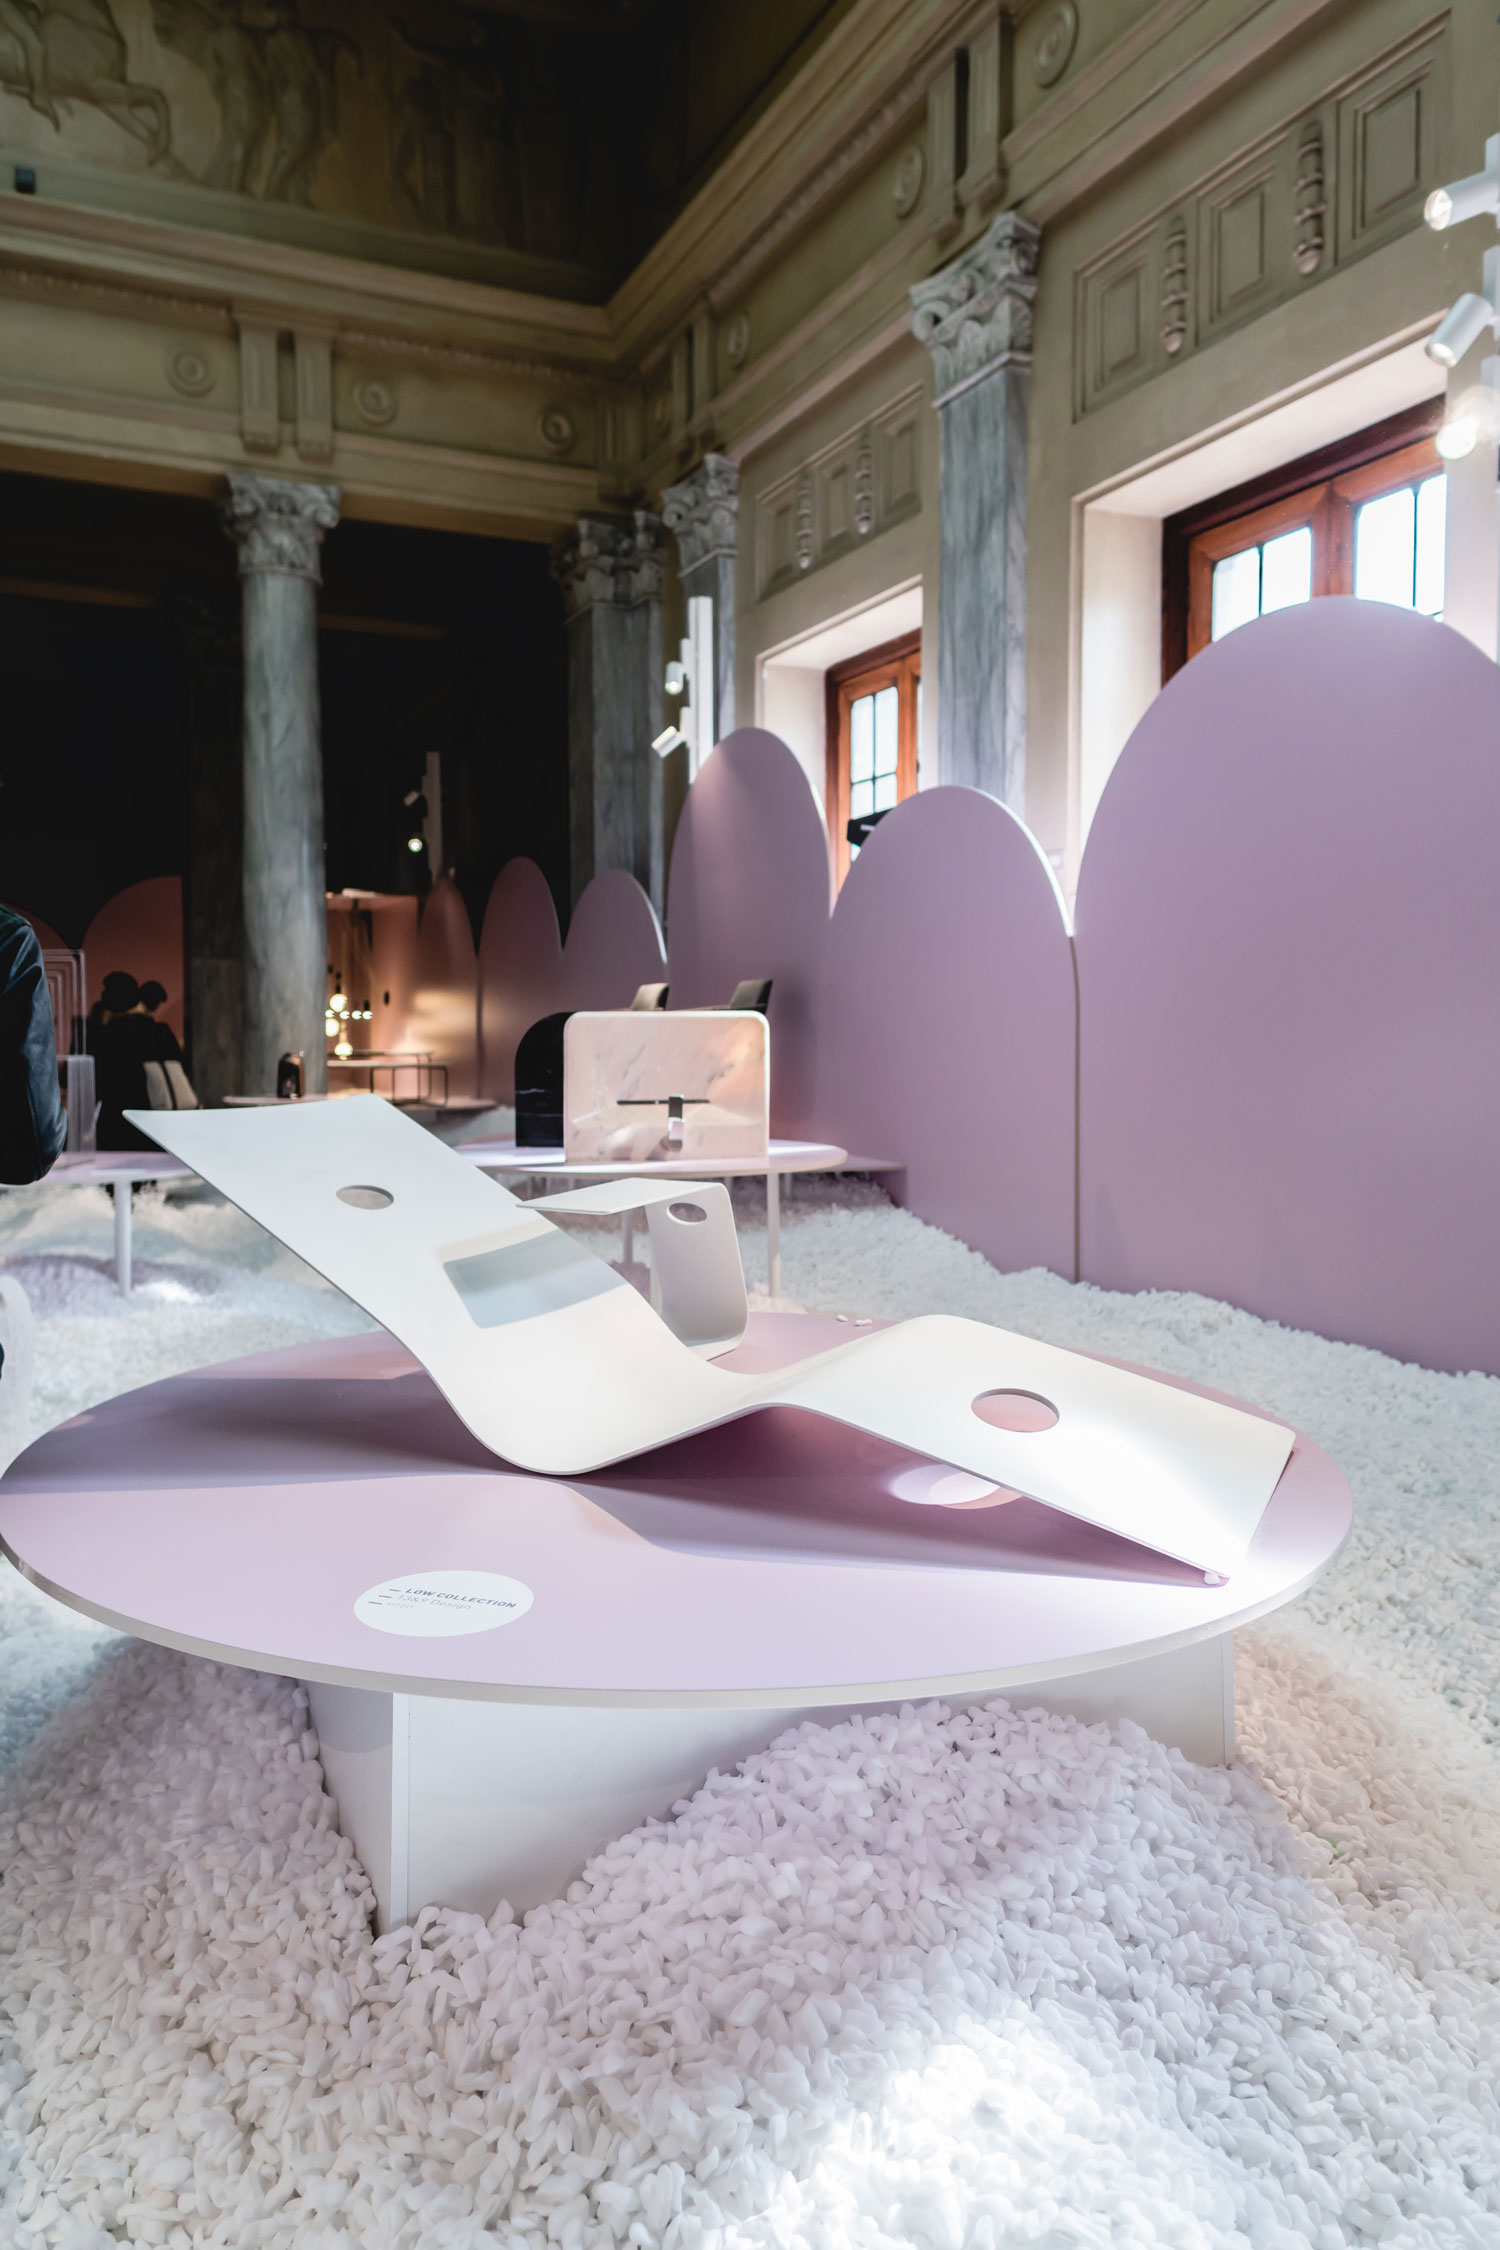 Best installations seen during Milan design week 2019 - Austrian Design - Pleasure & Treasure